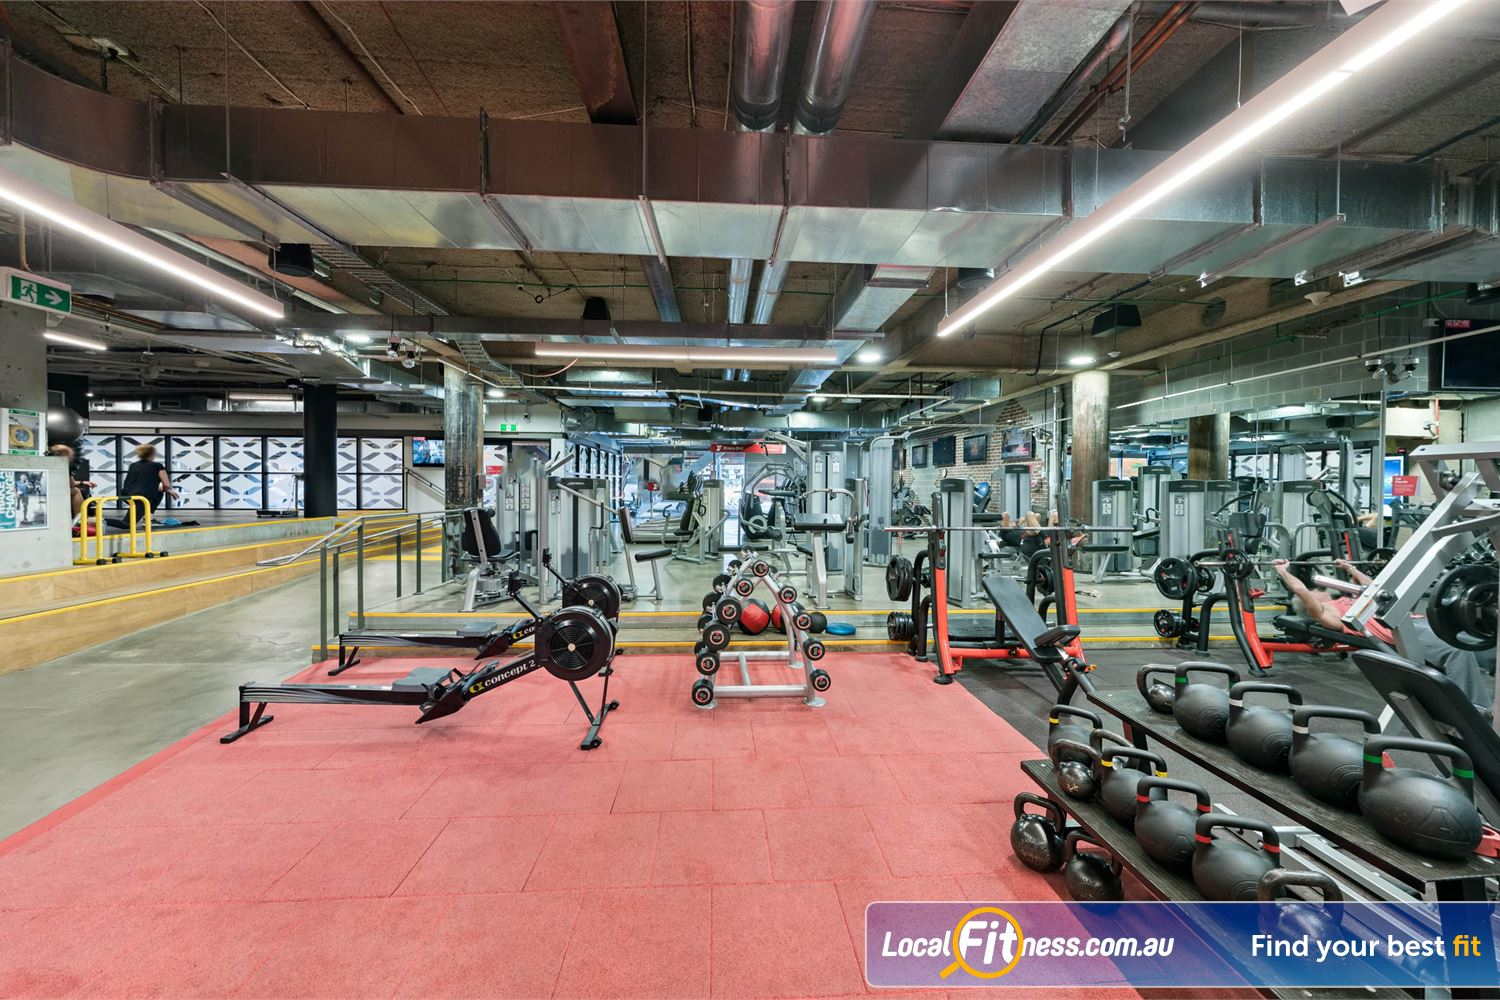 Fitness First Platinum Shelley St Sydney Get functional in our freestyle area with kettlebells, rowers and more.